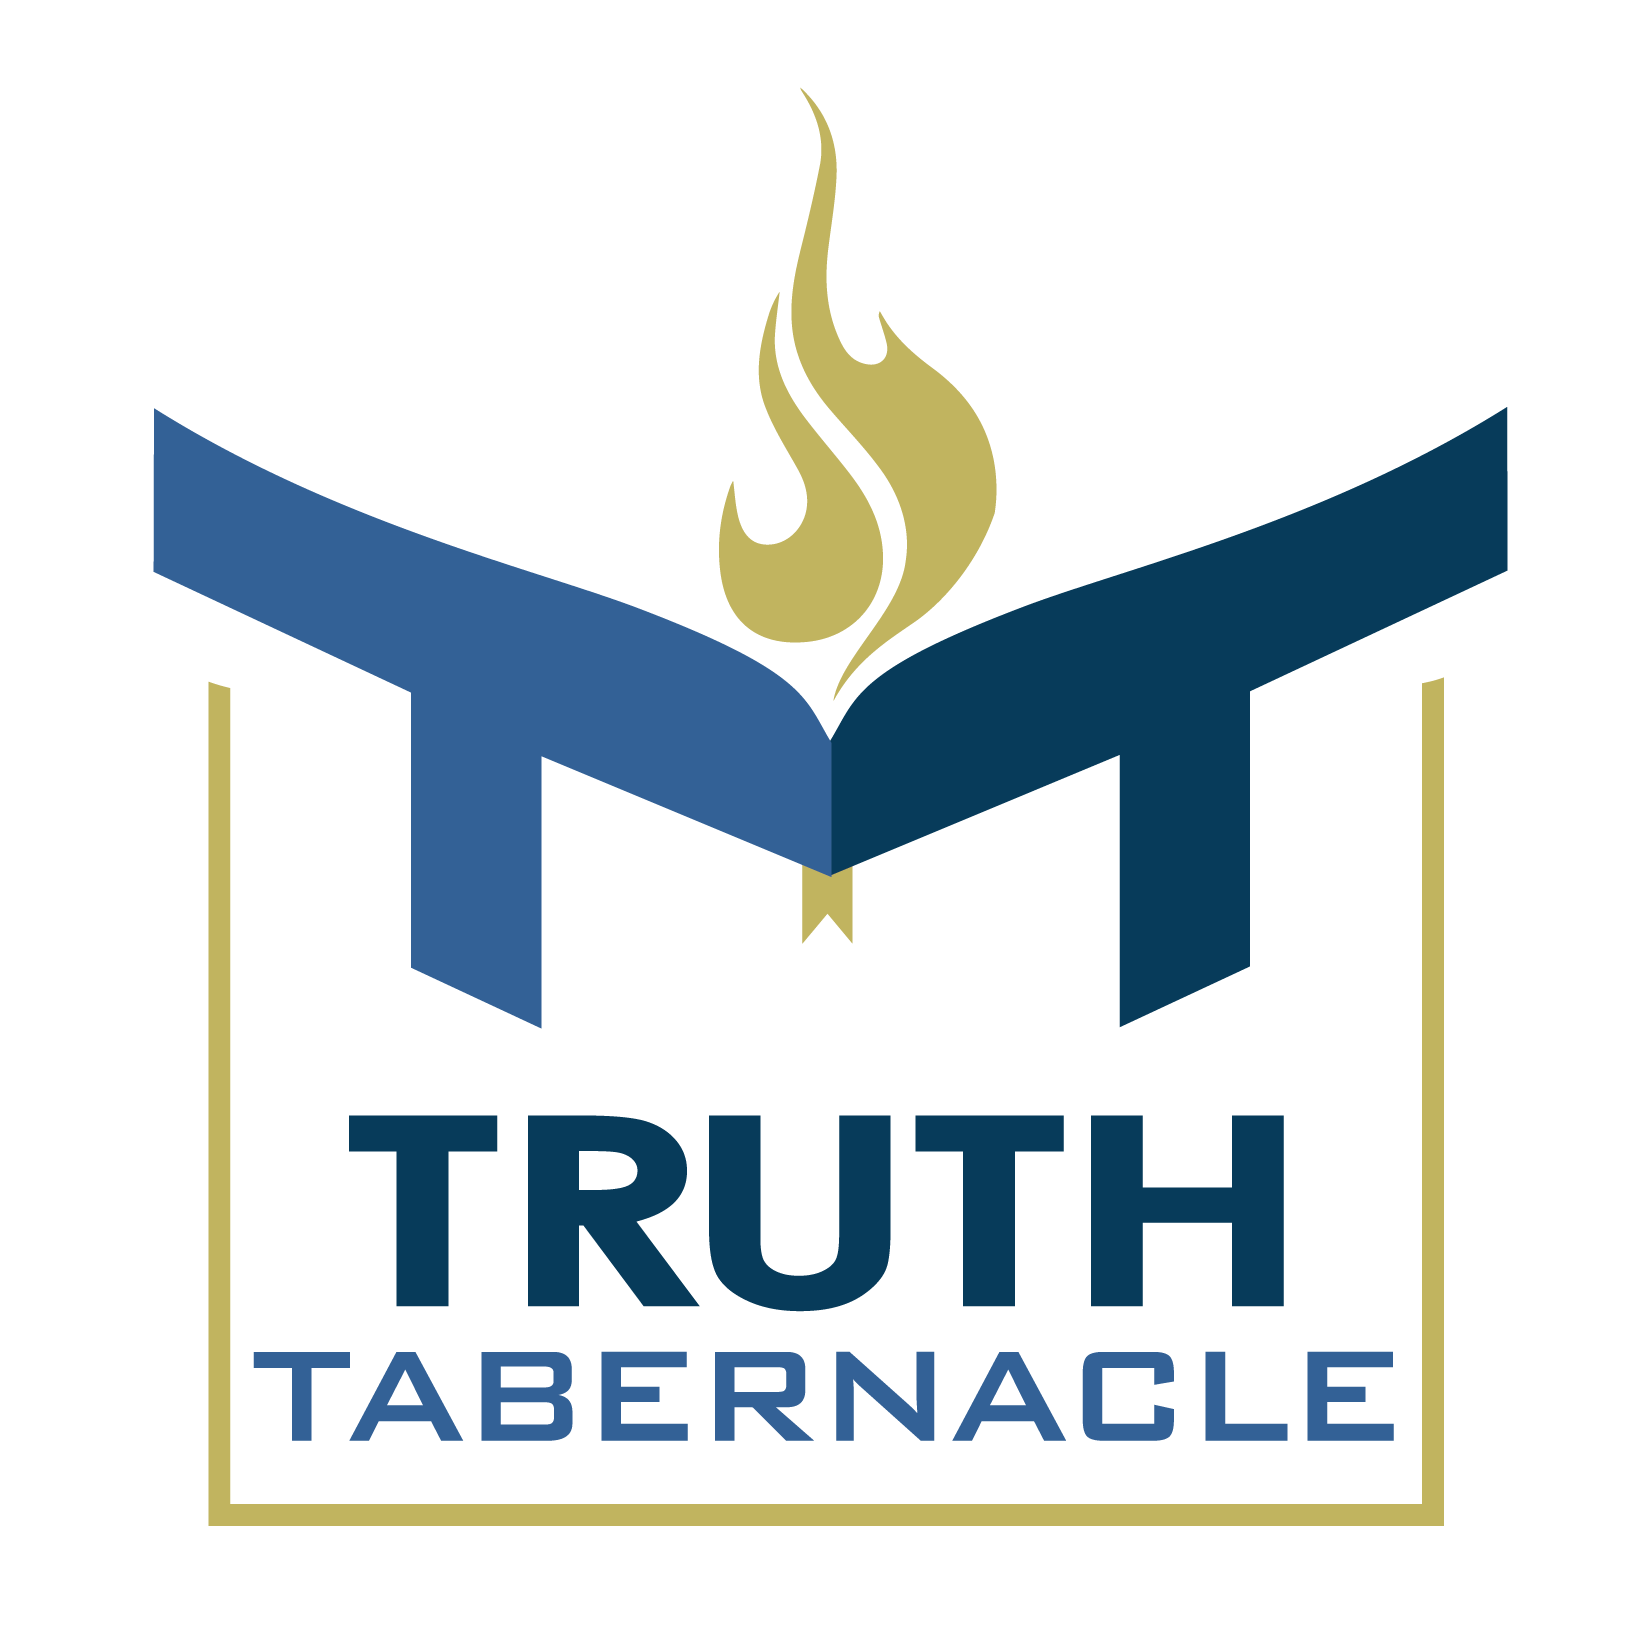 Truth Tabernacle of Bartlesville